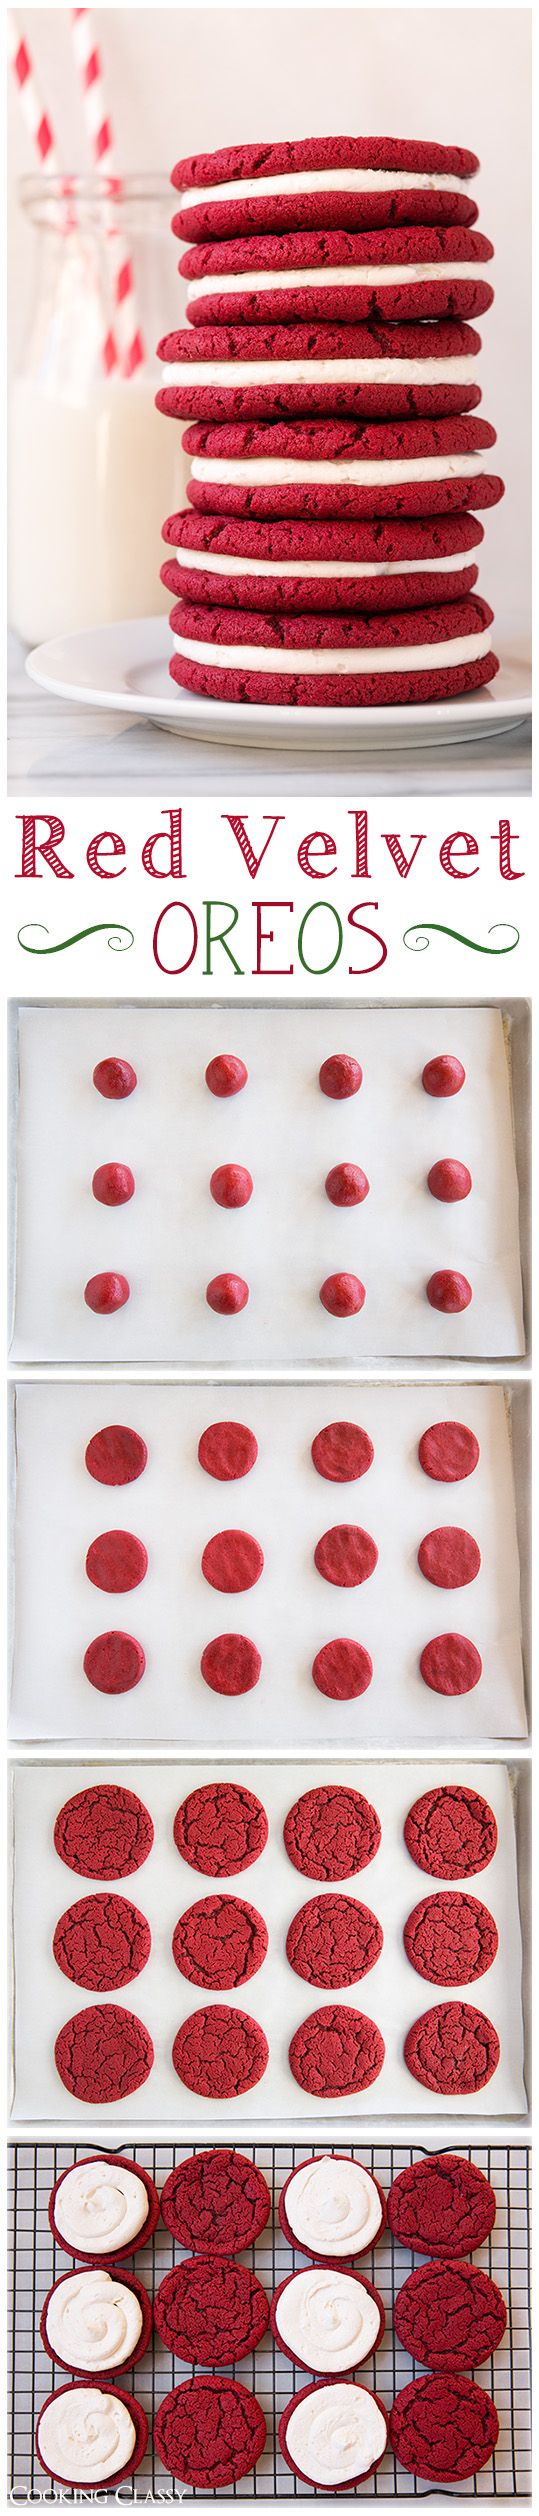 Red Velvet Oreo Cookies - these cookies are unbelievably delicious! If you like red velvet you will LOVE these!